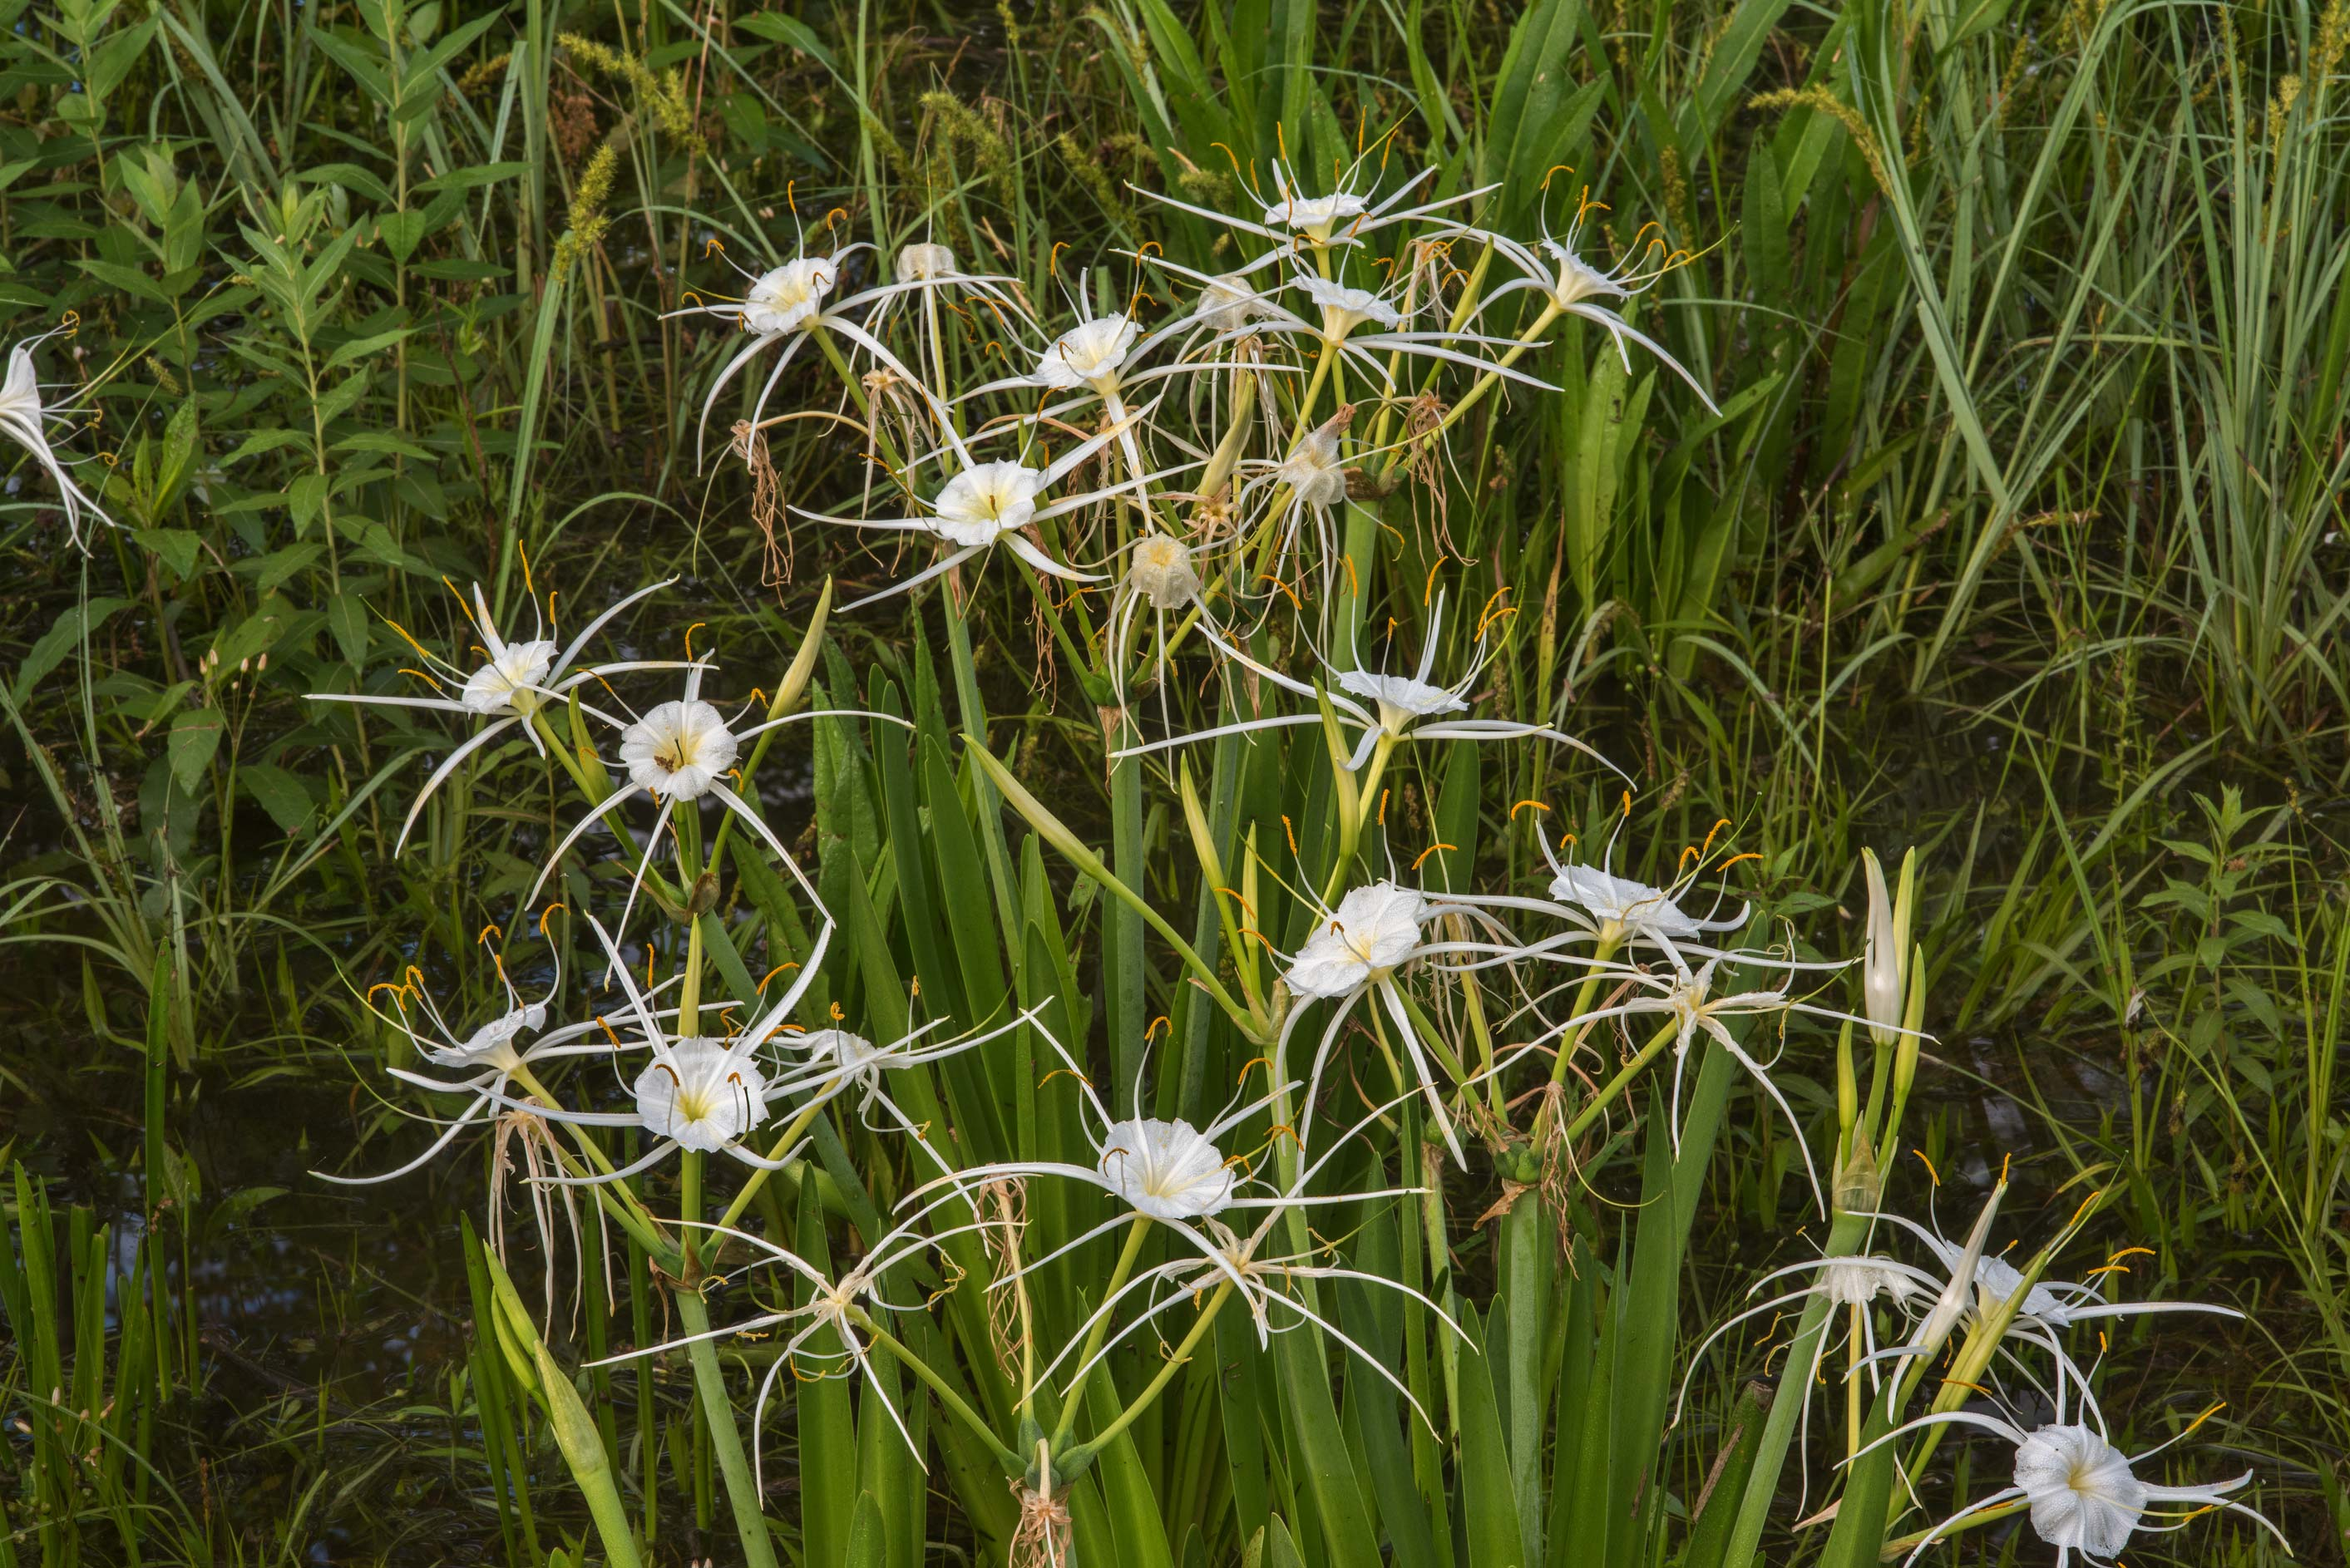 Spider lily (Hymenocallis) in swampy area near Rd...north-east from College Station, Texas